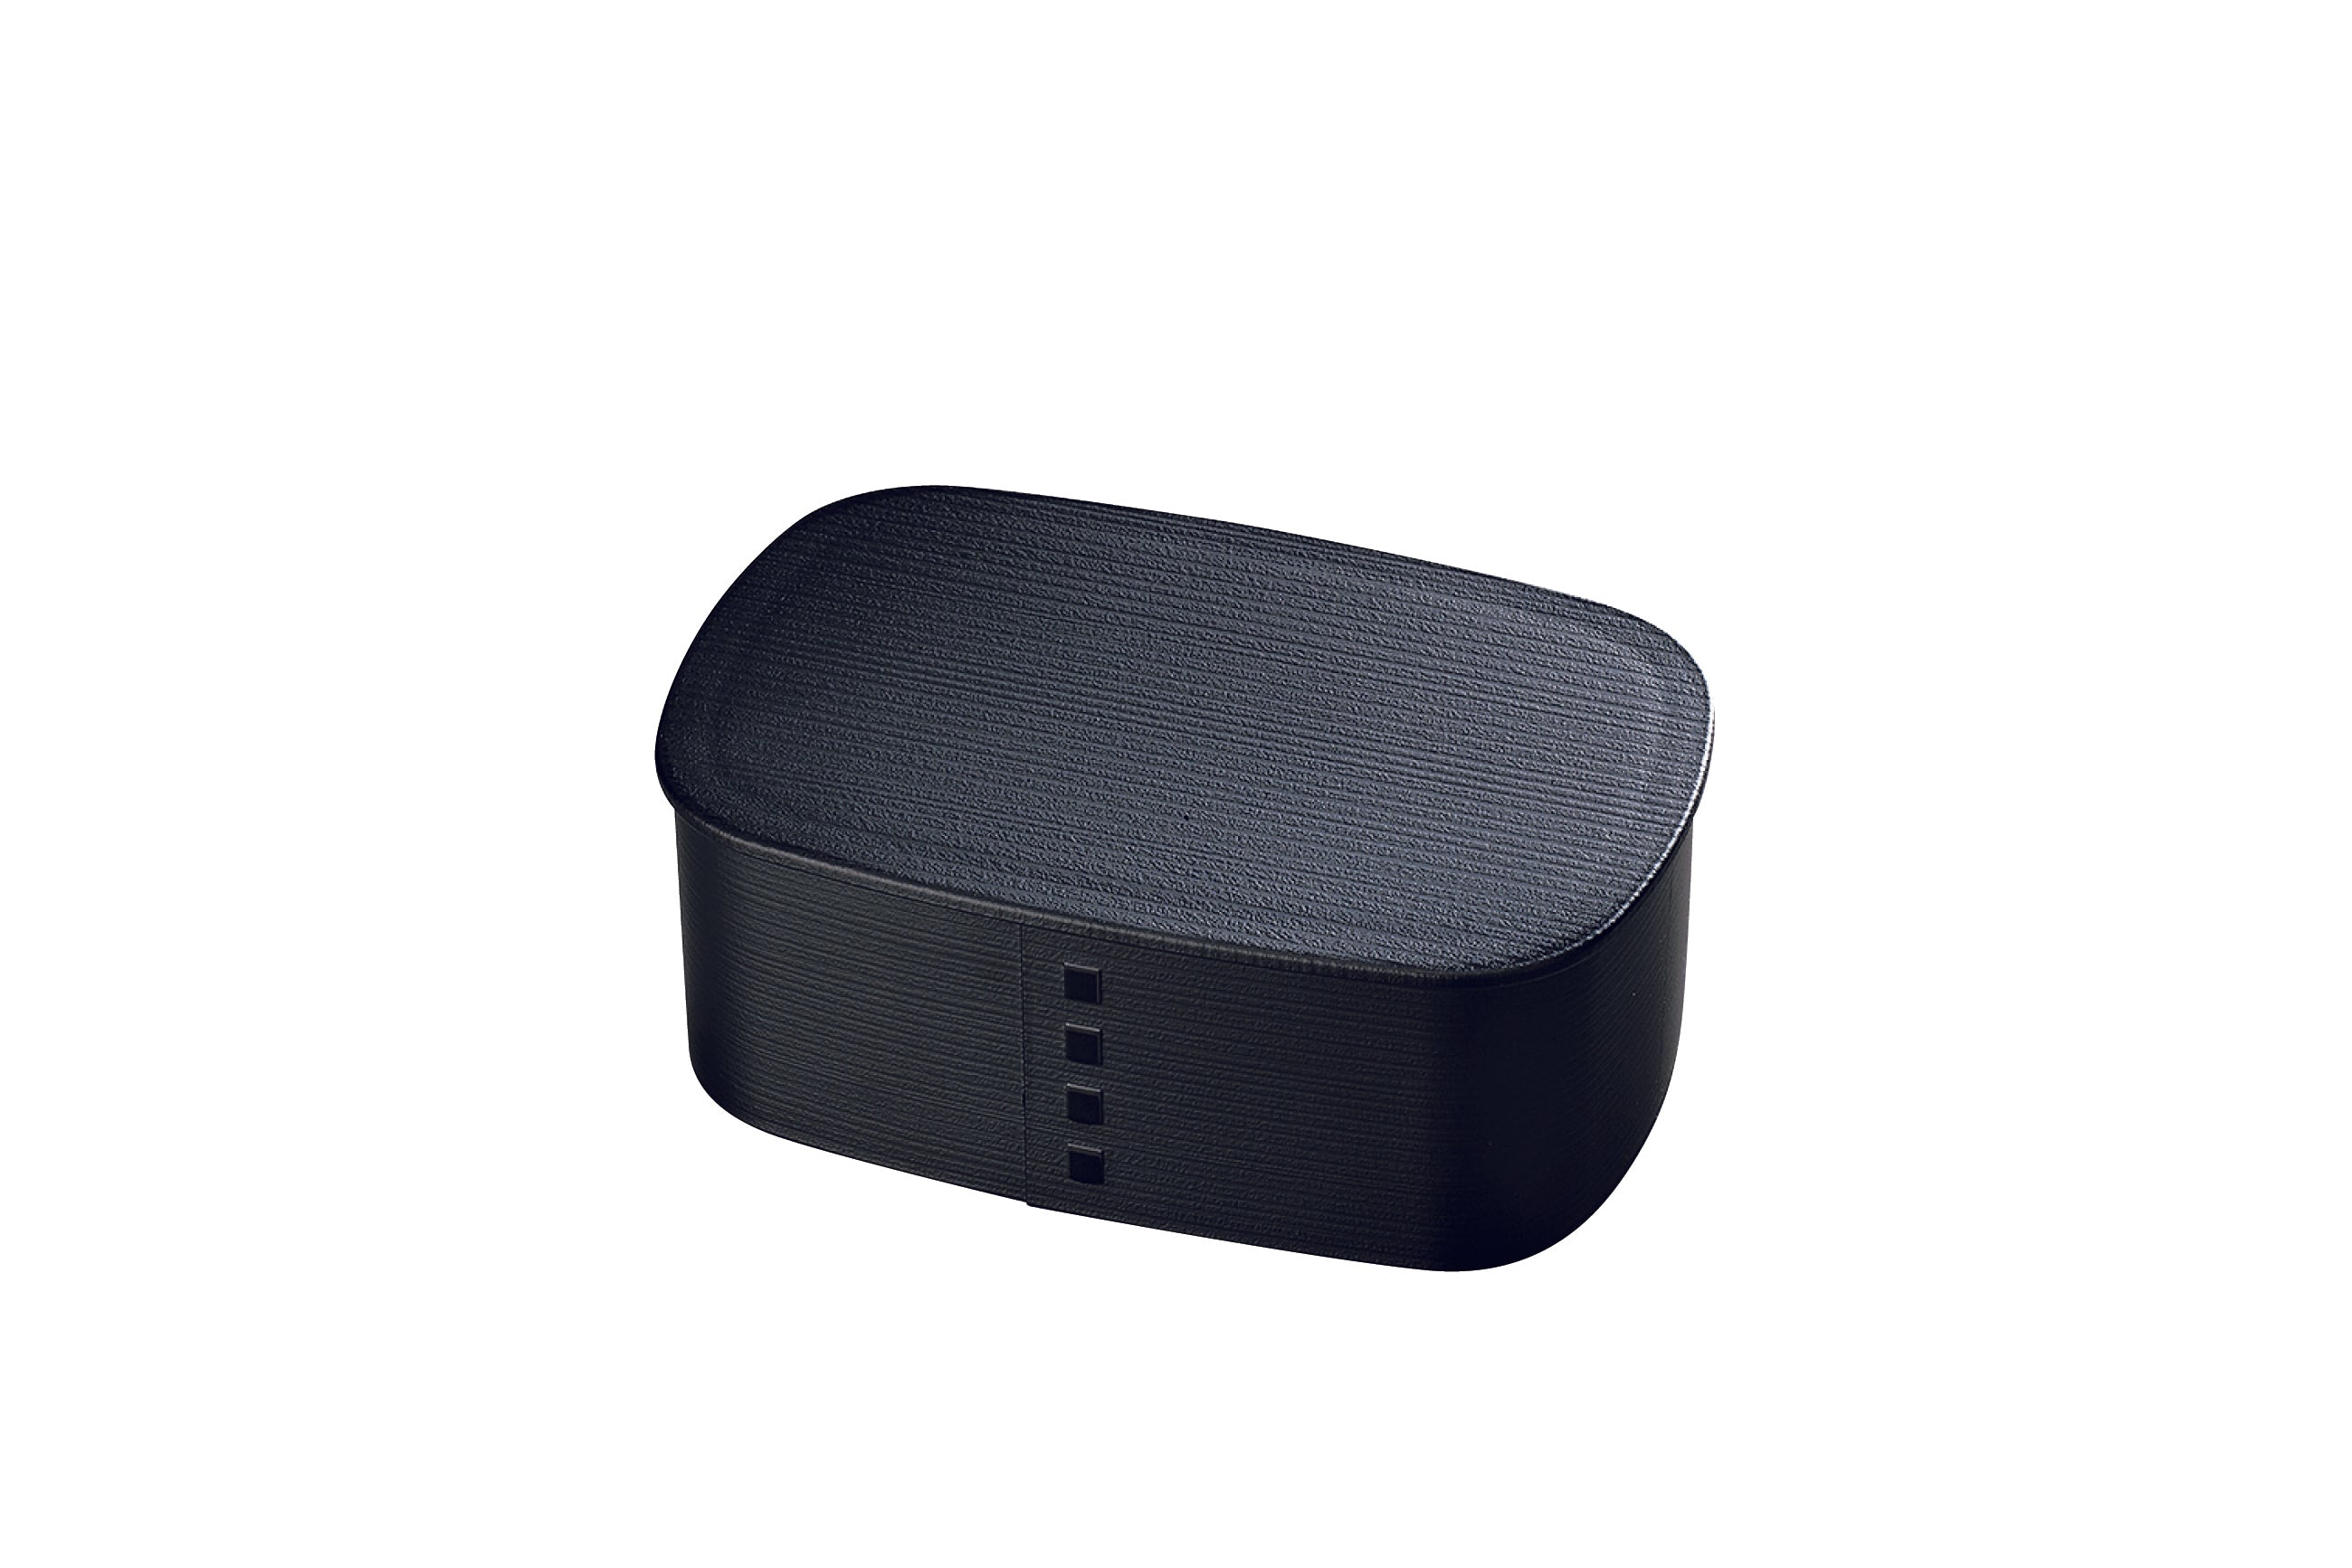 Nuri Wappa One Tier Bento Box | Black by Hakoya - Bento&co Japanese Bento Lunch Boxes and Kitchenware Specialists